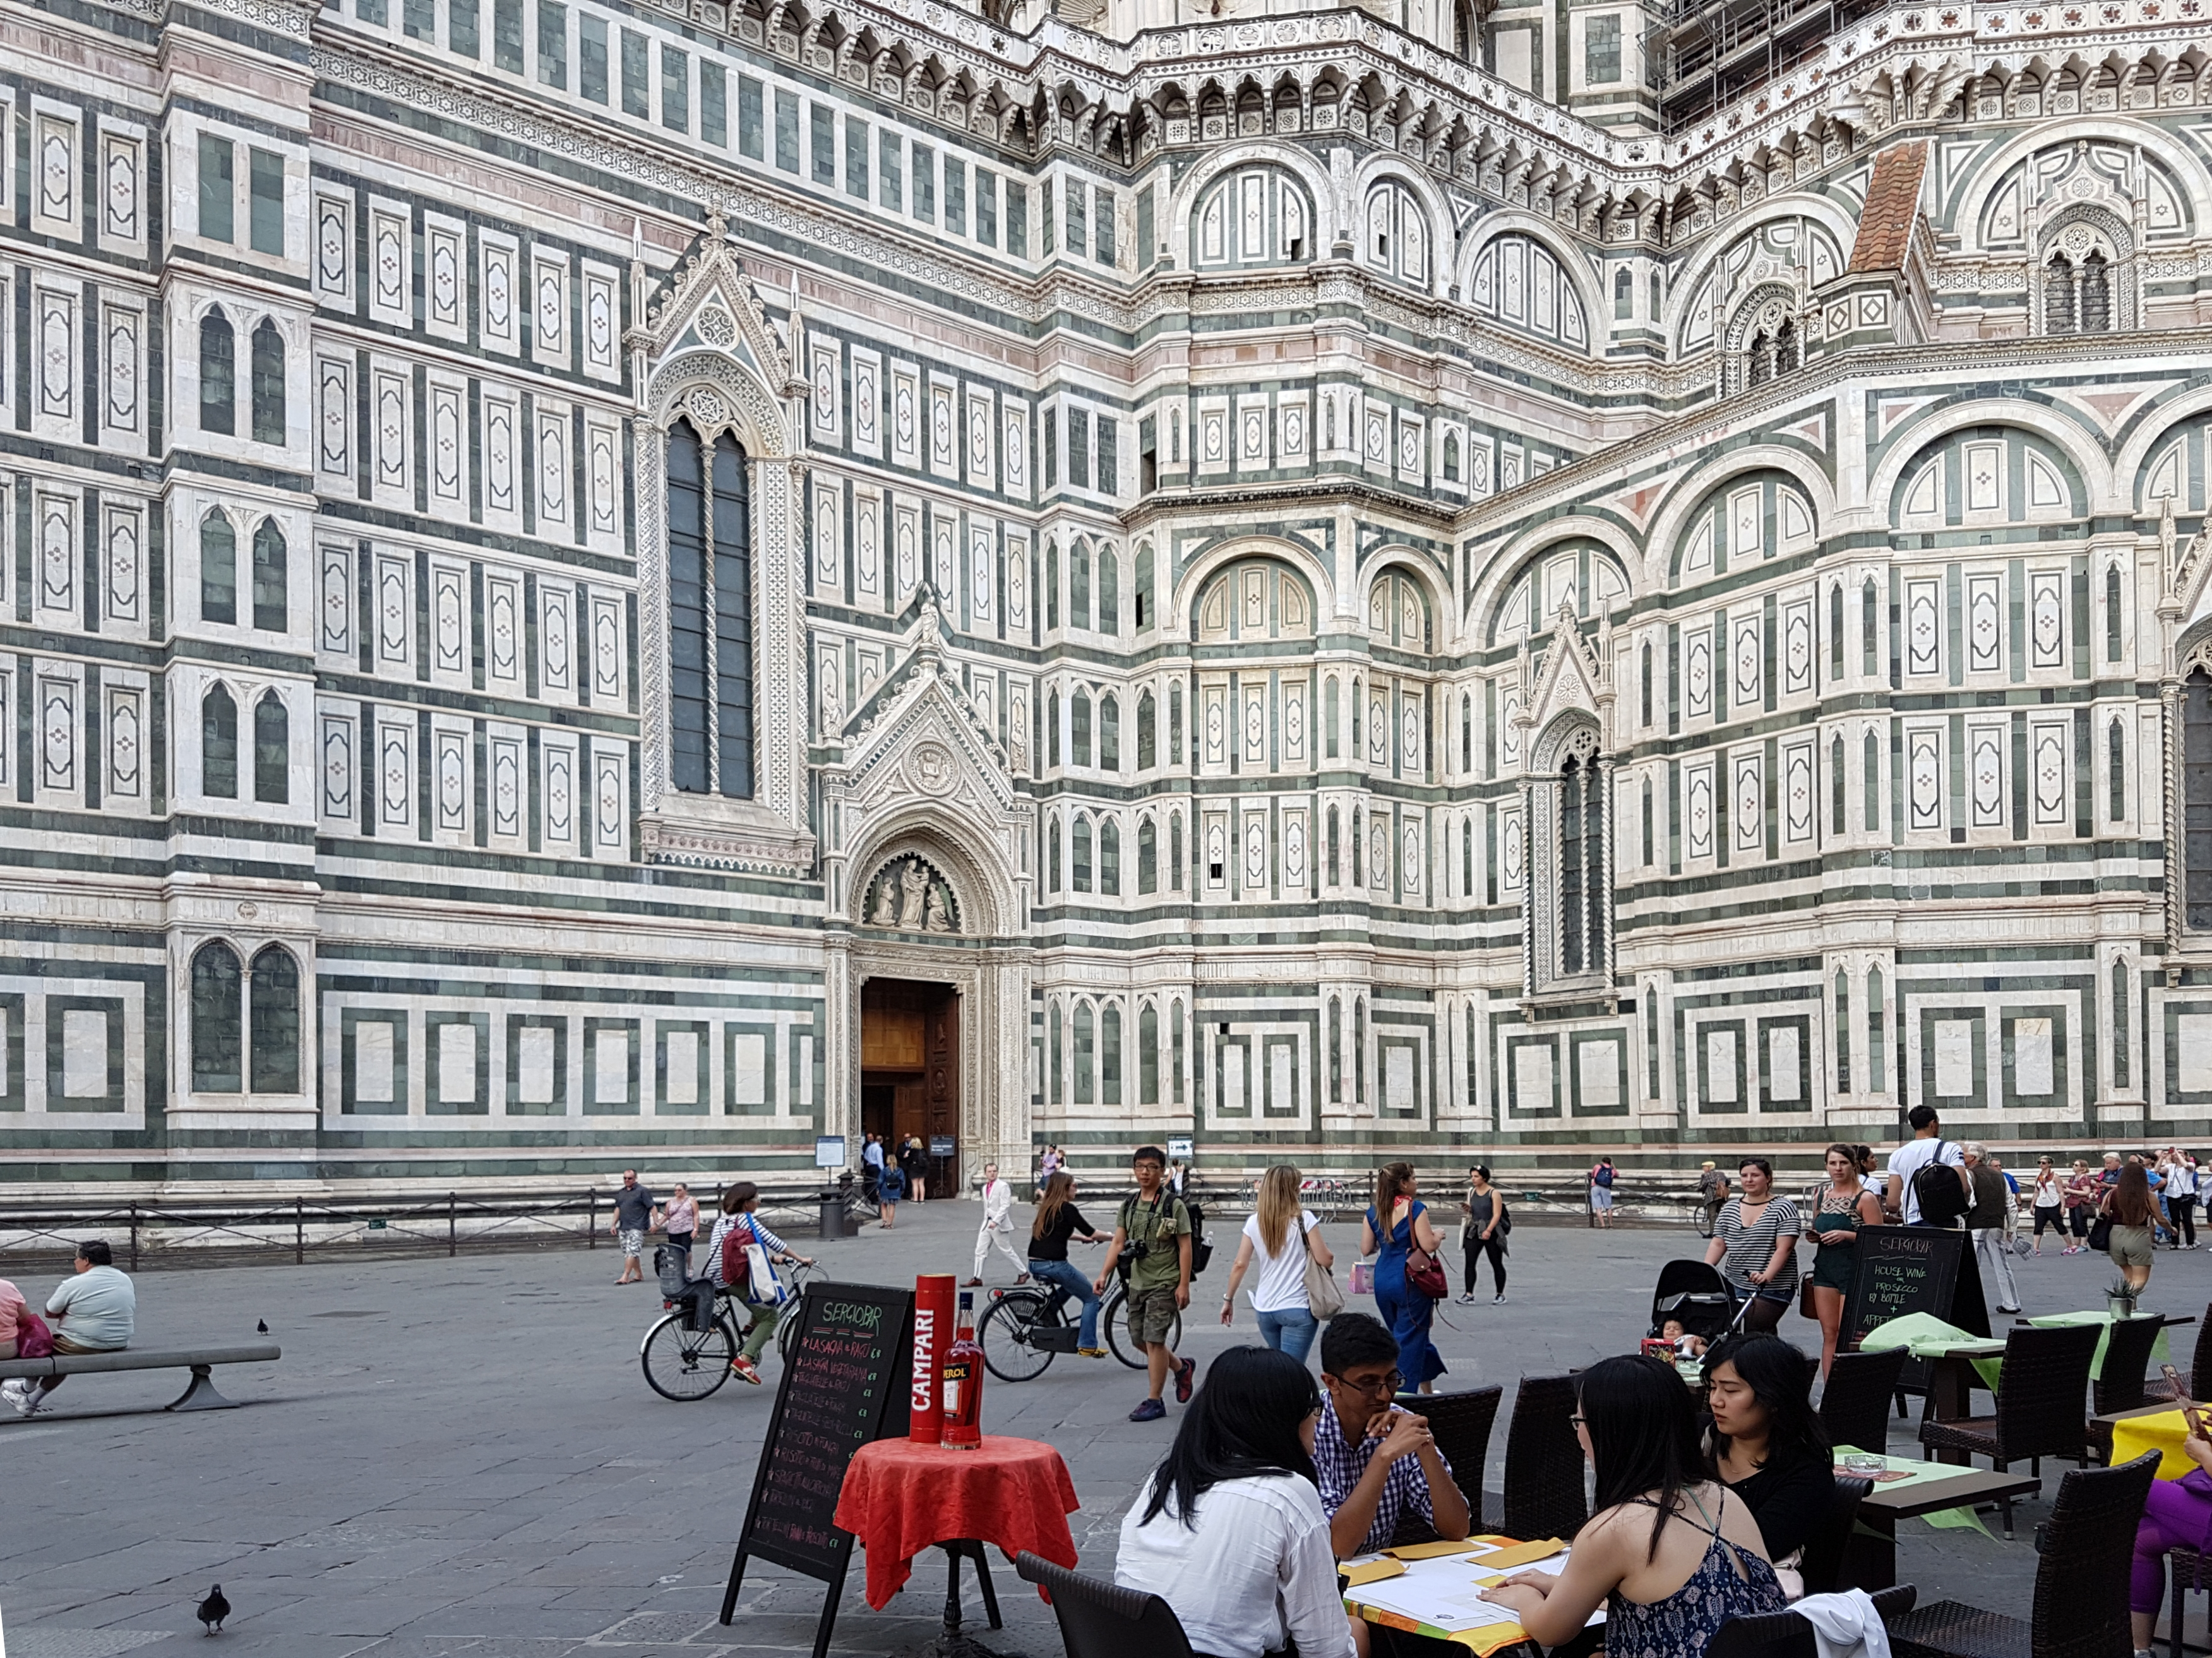 piazza del duomo florence history italy - photo#4